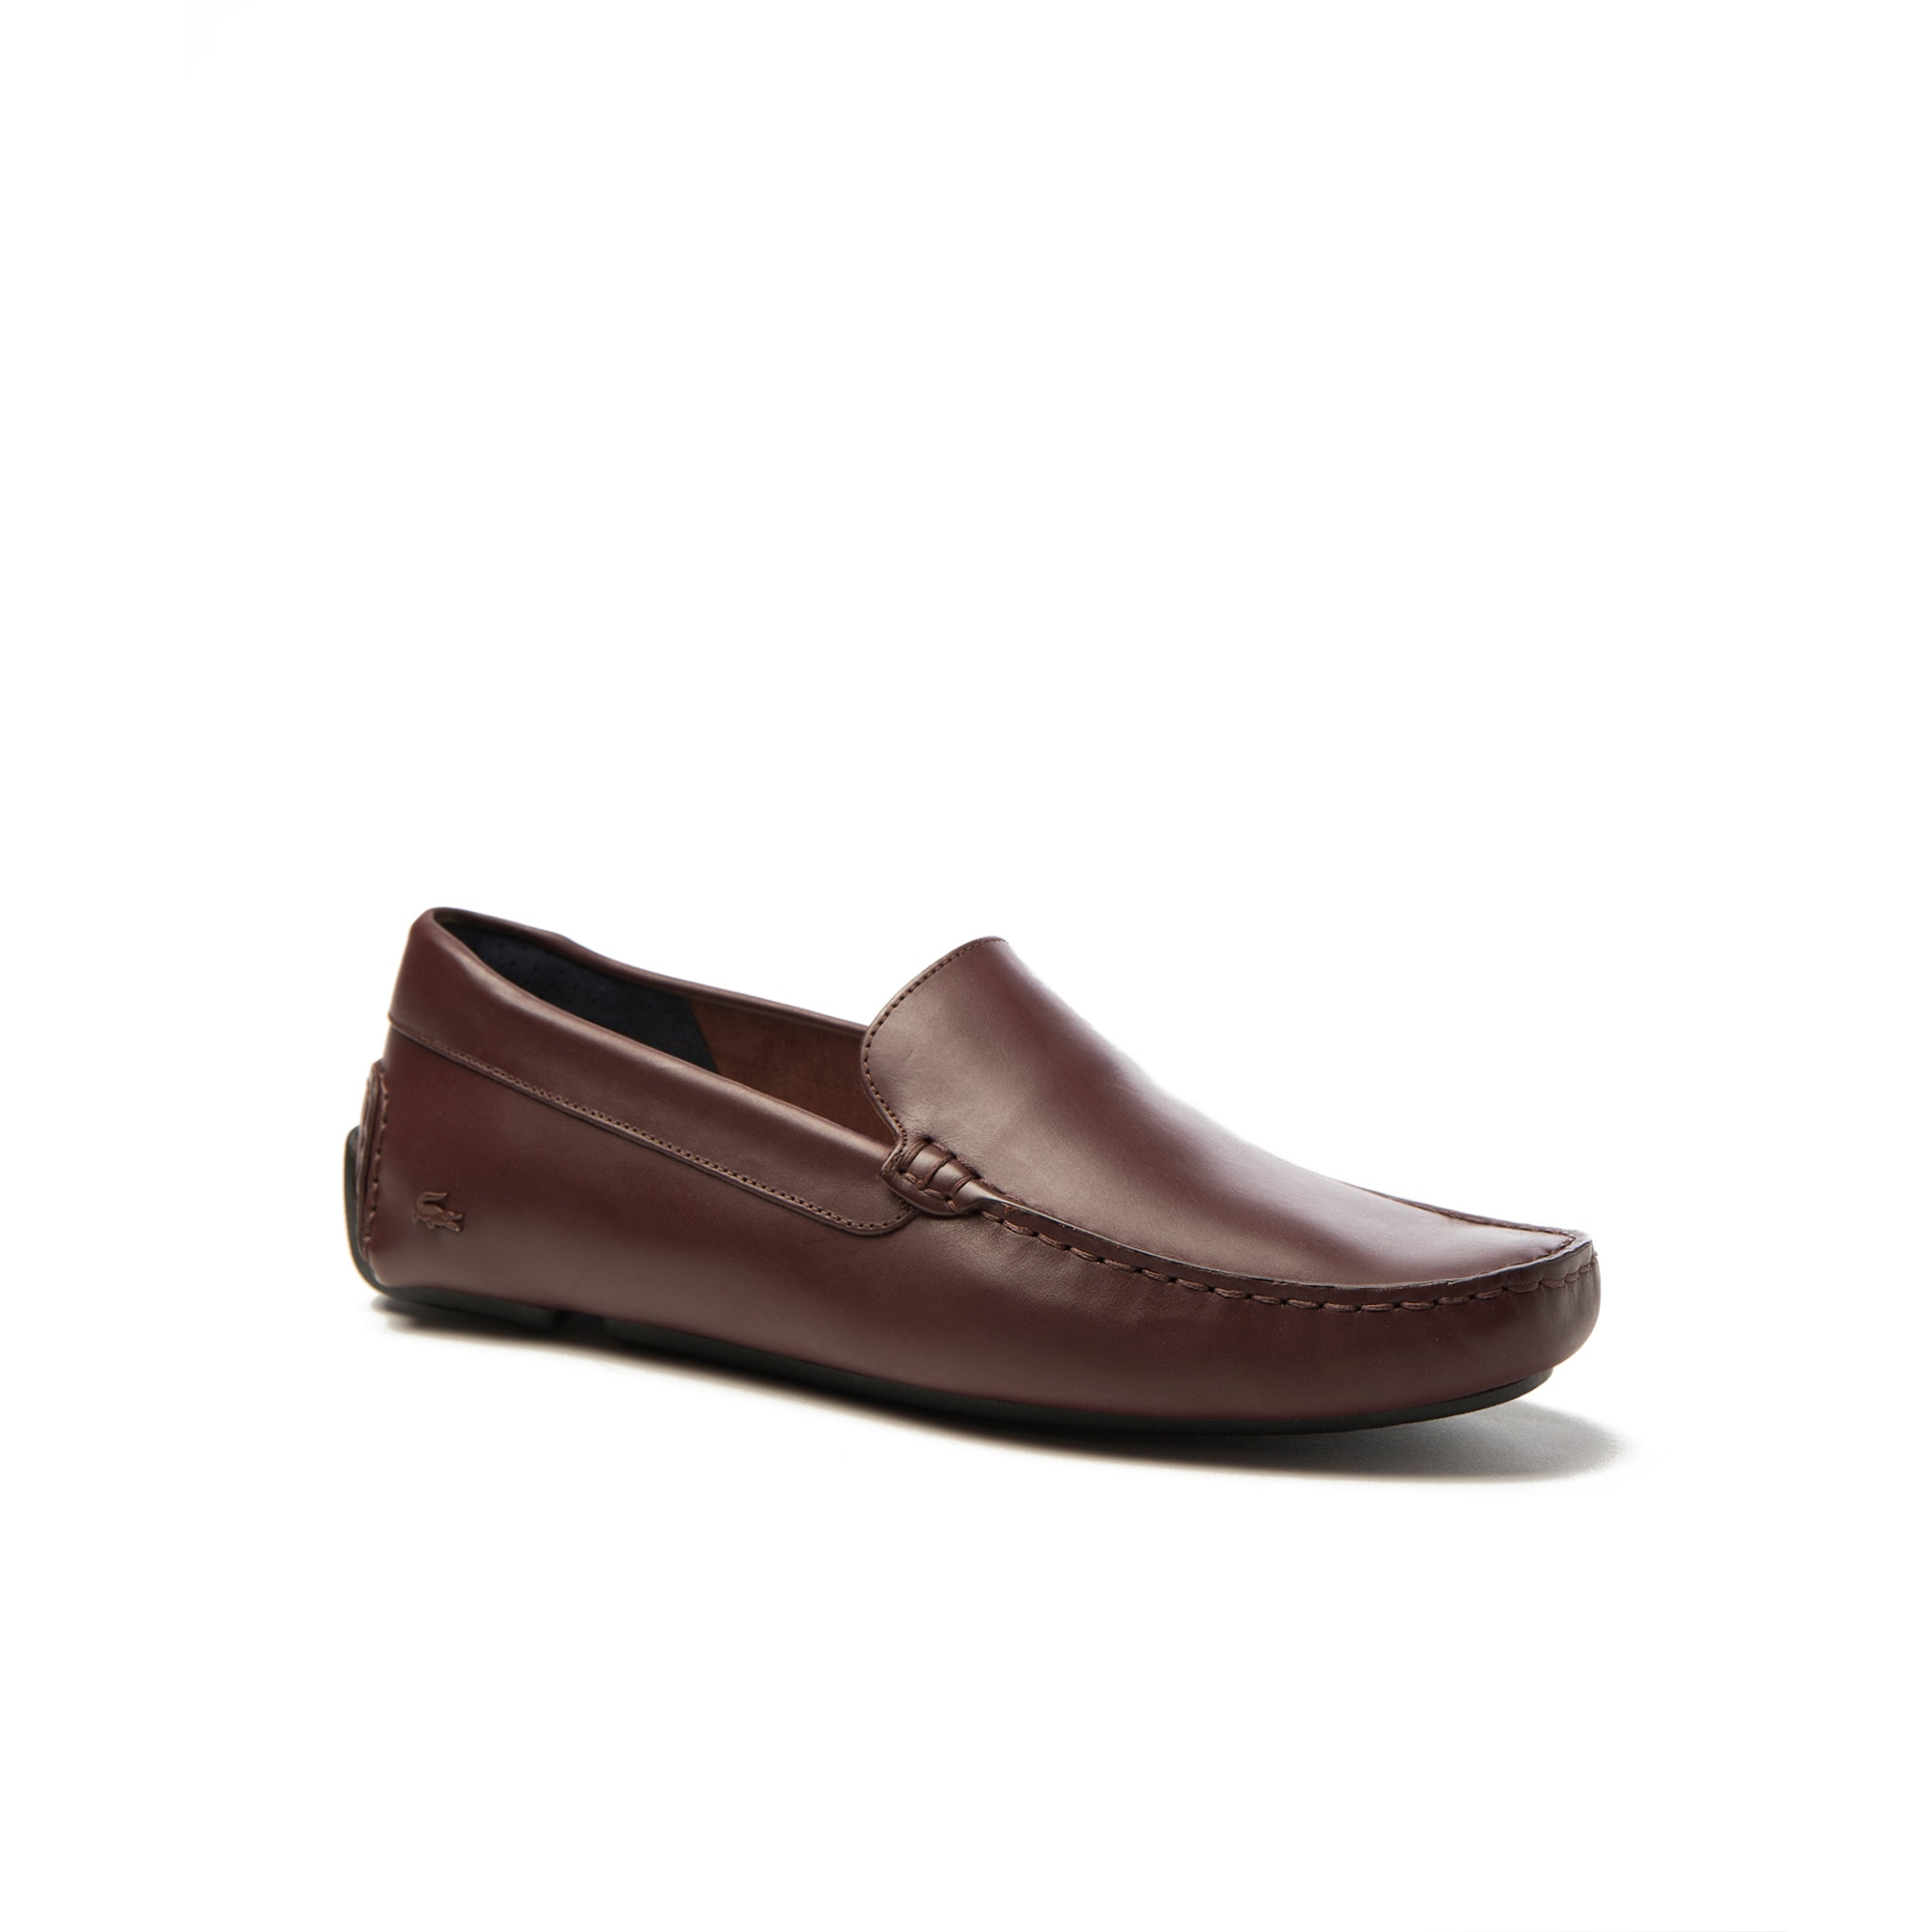 라코스테 모카신 Lacoste Mens Piloter Leather Moccasins,dark brown